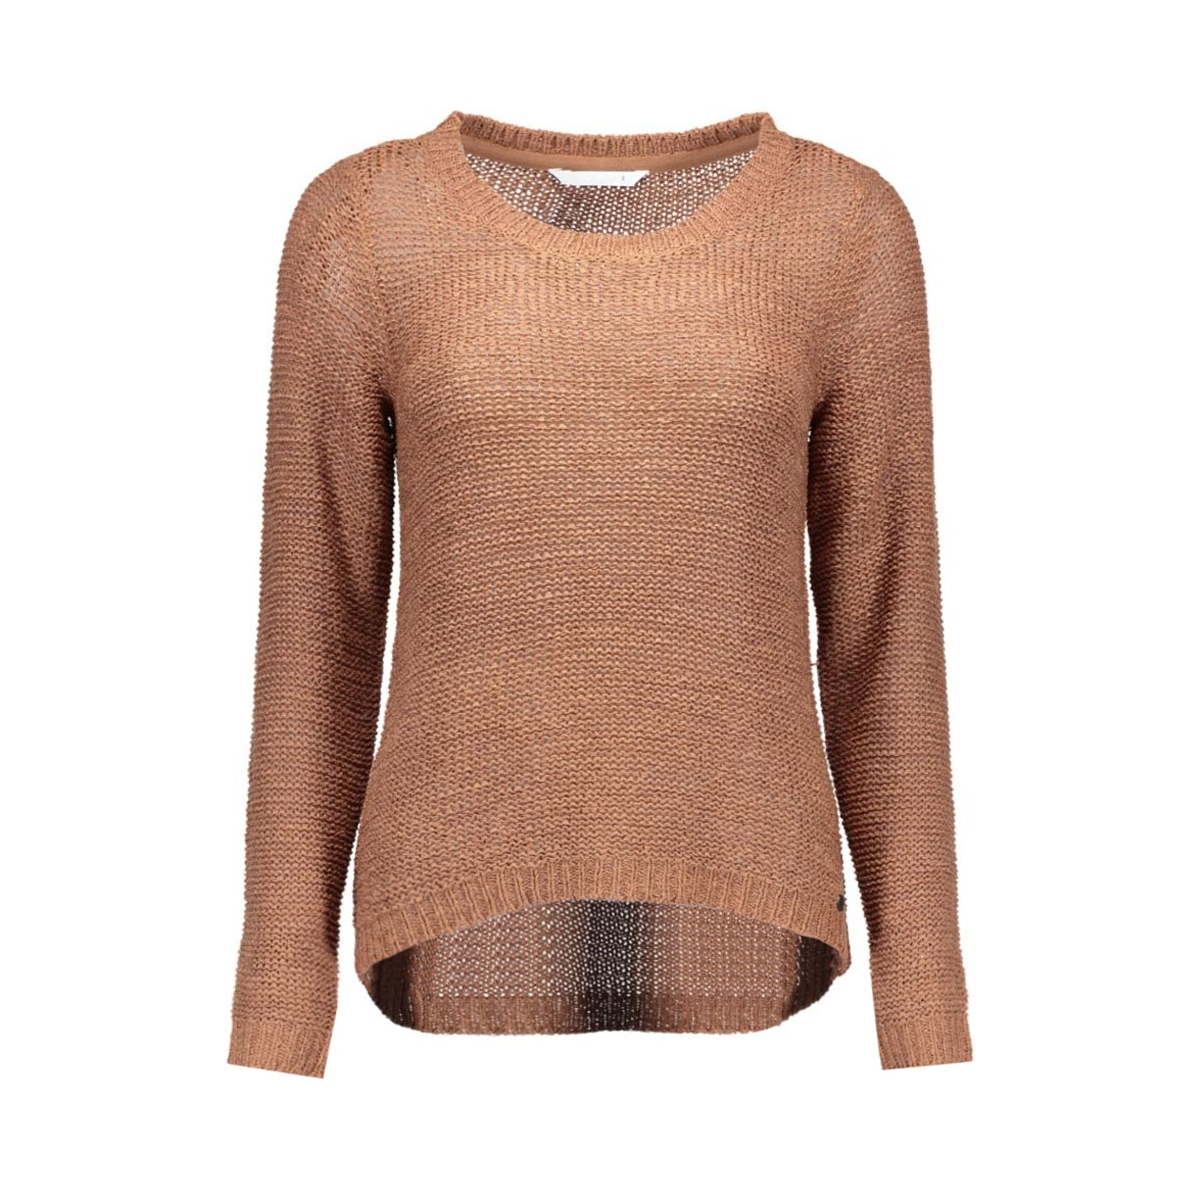 onlgeena xo l/s pullover knt noos 15113356 only trui cognac